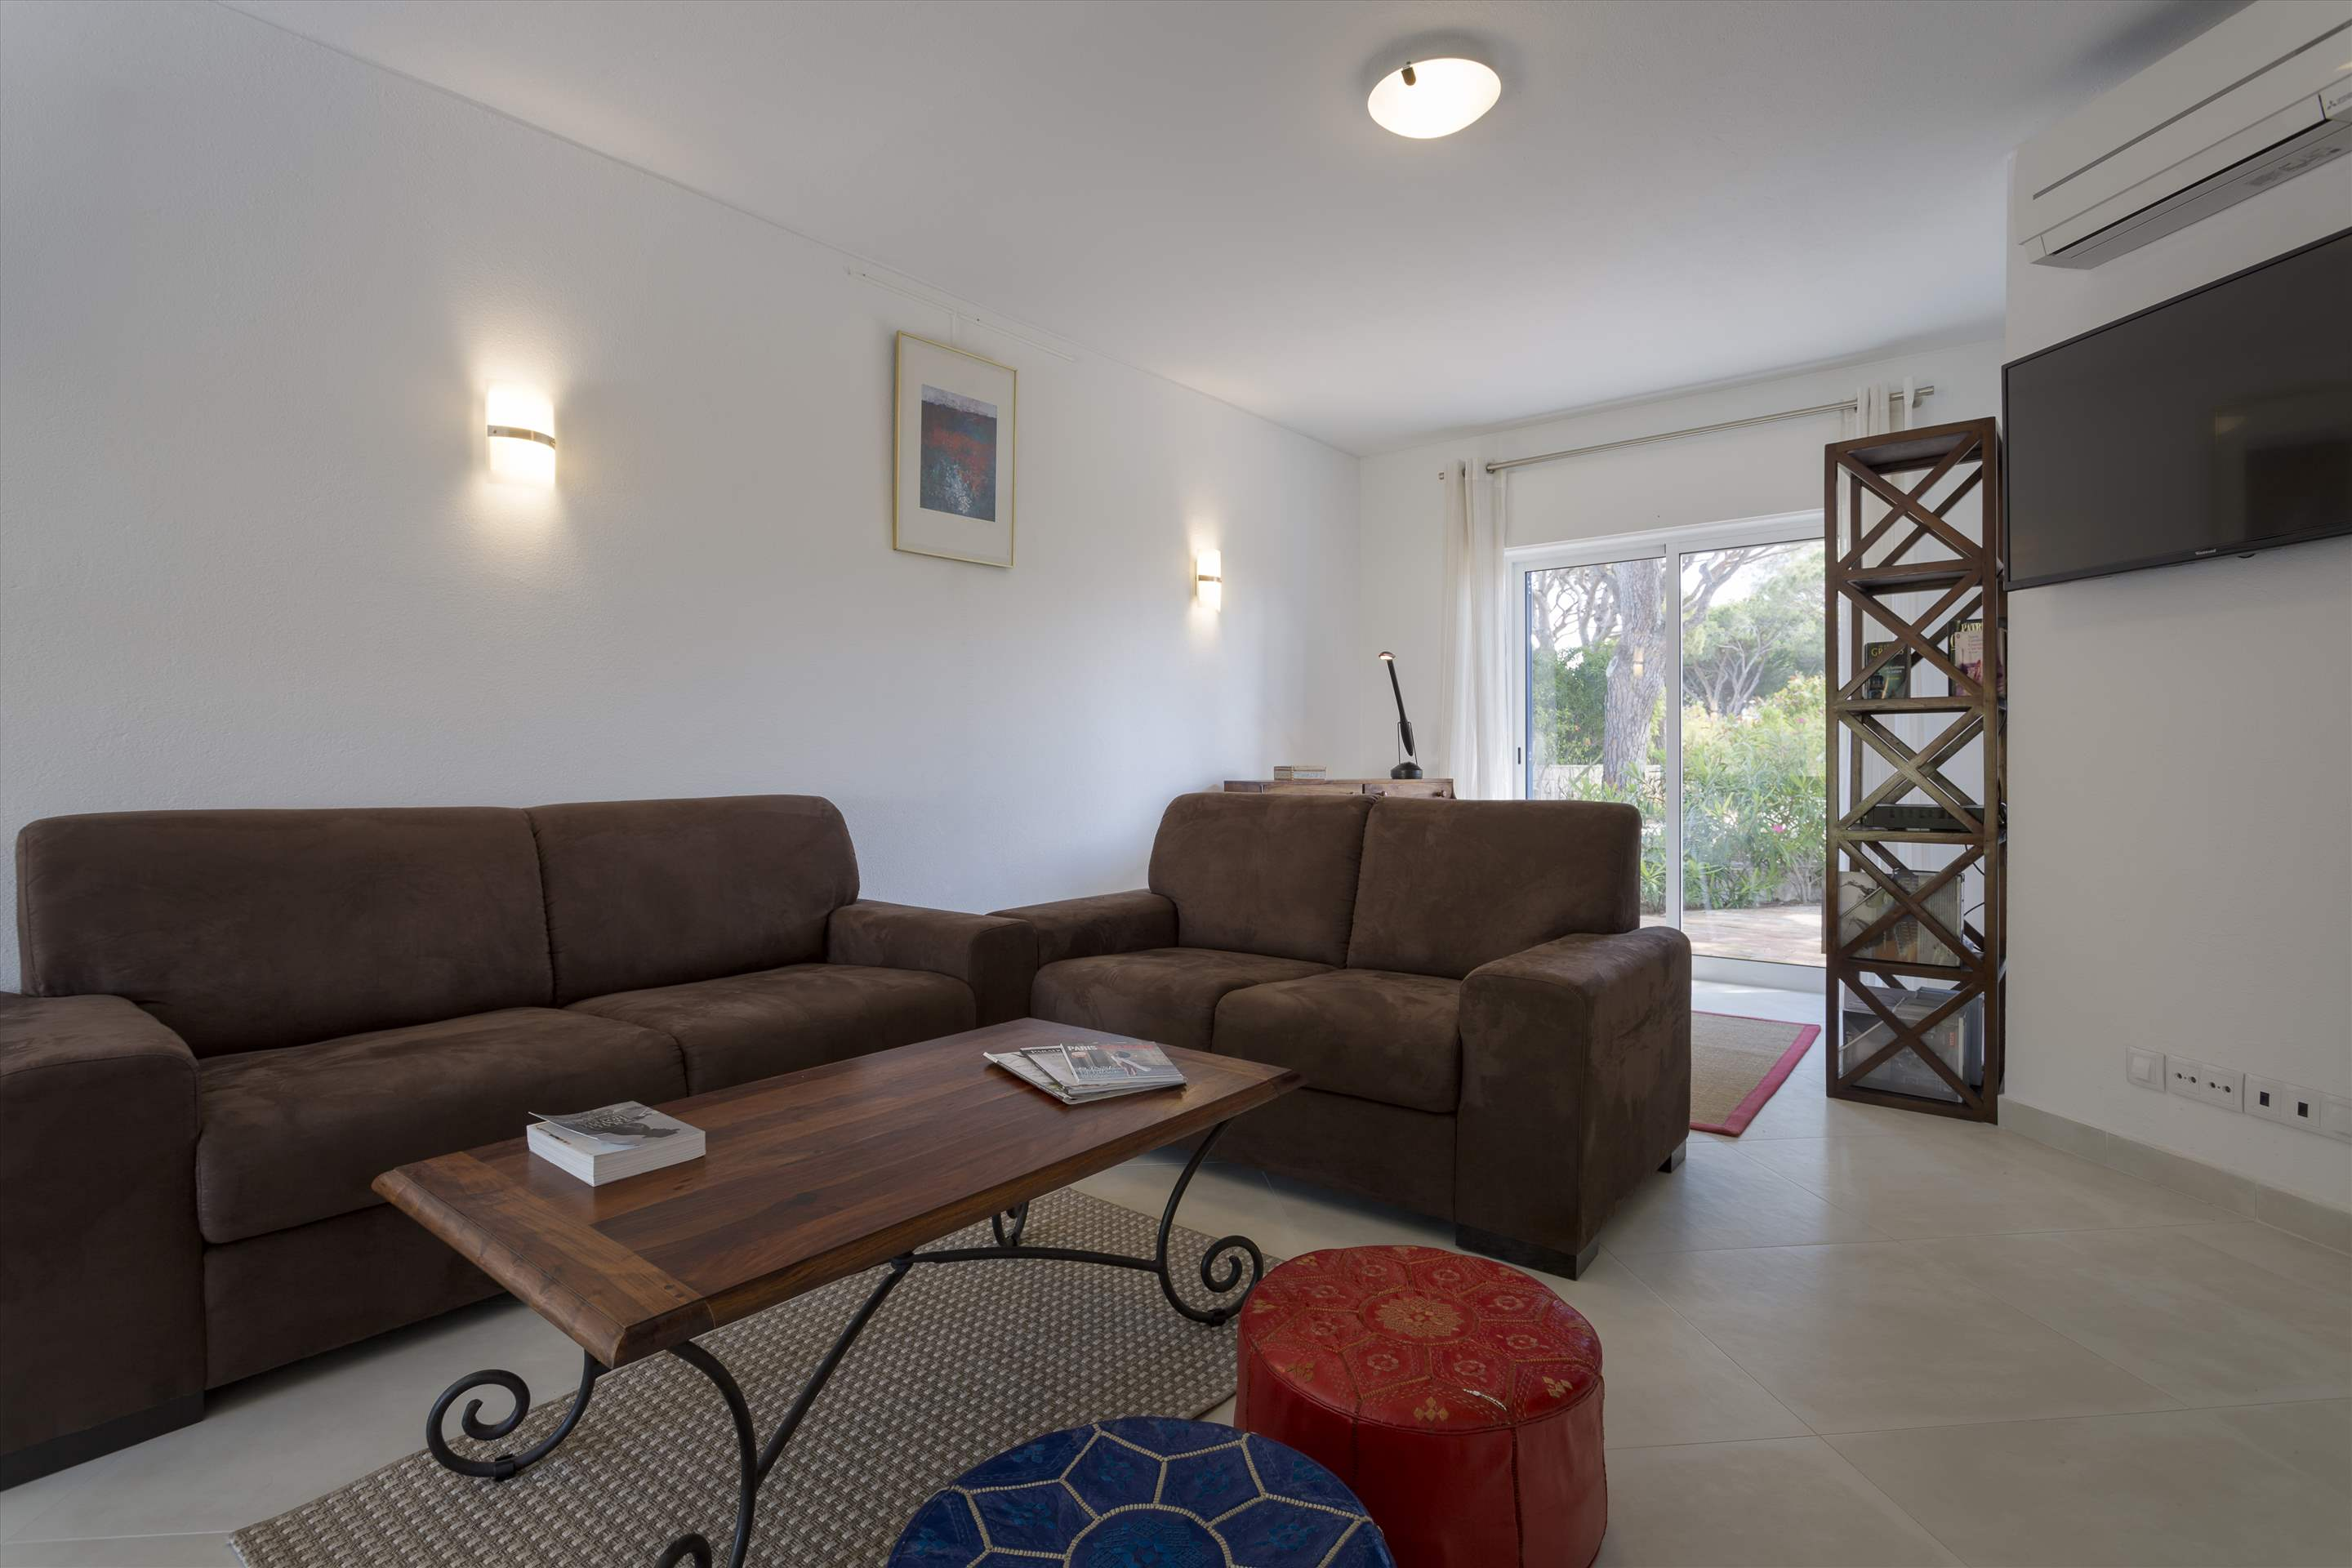 Townhouse Megan, 3 bedroom villa in Vale do Lobo, Algarve Photo #4